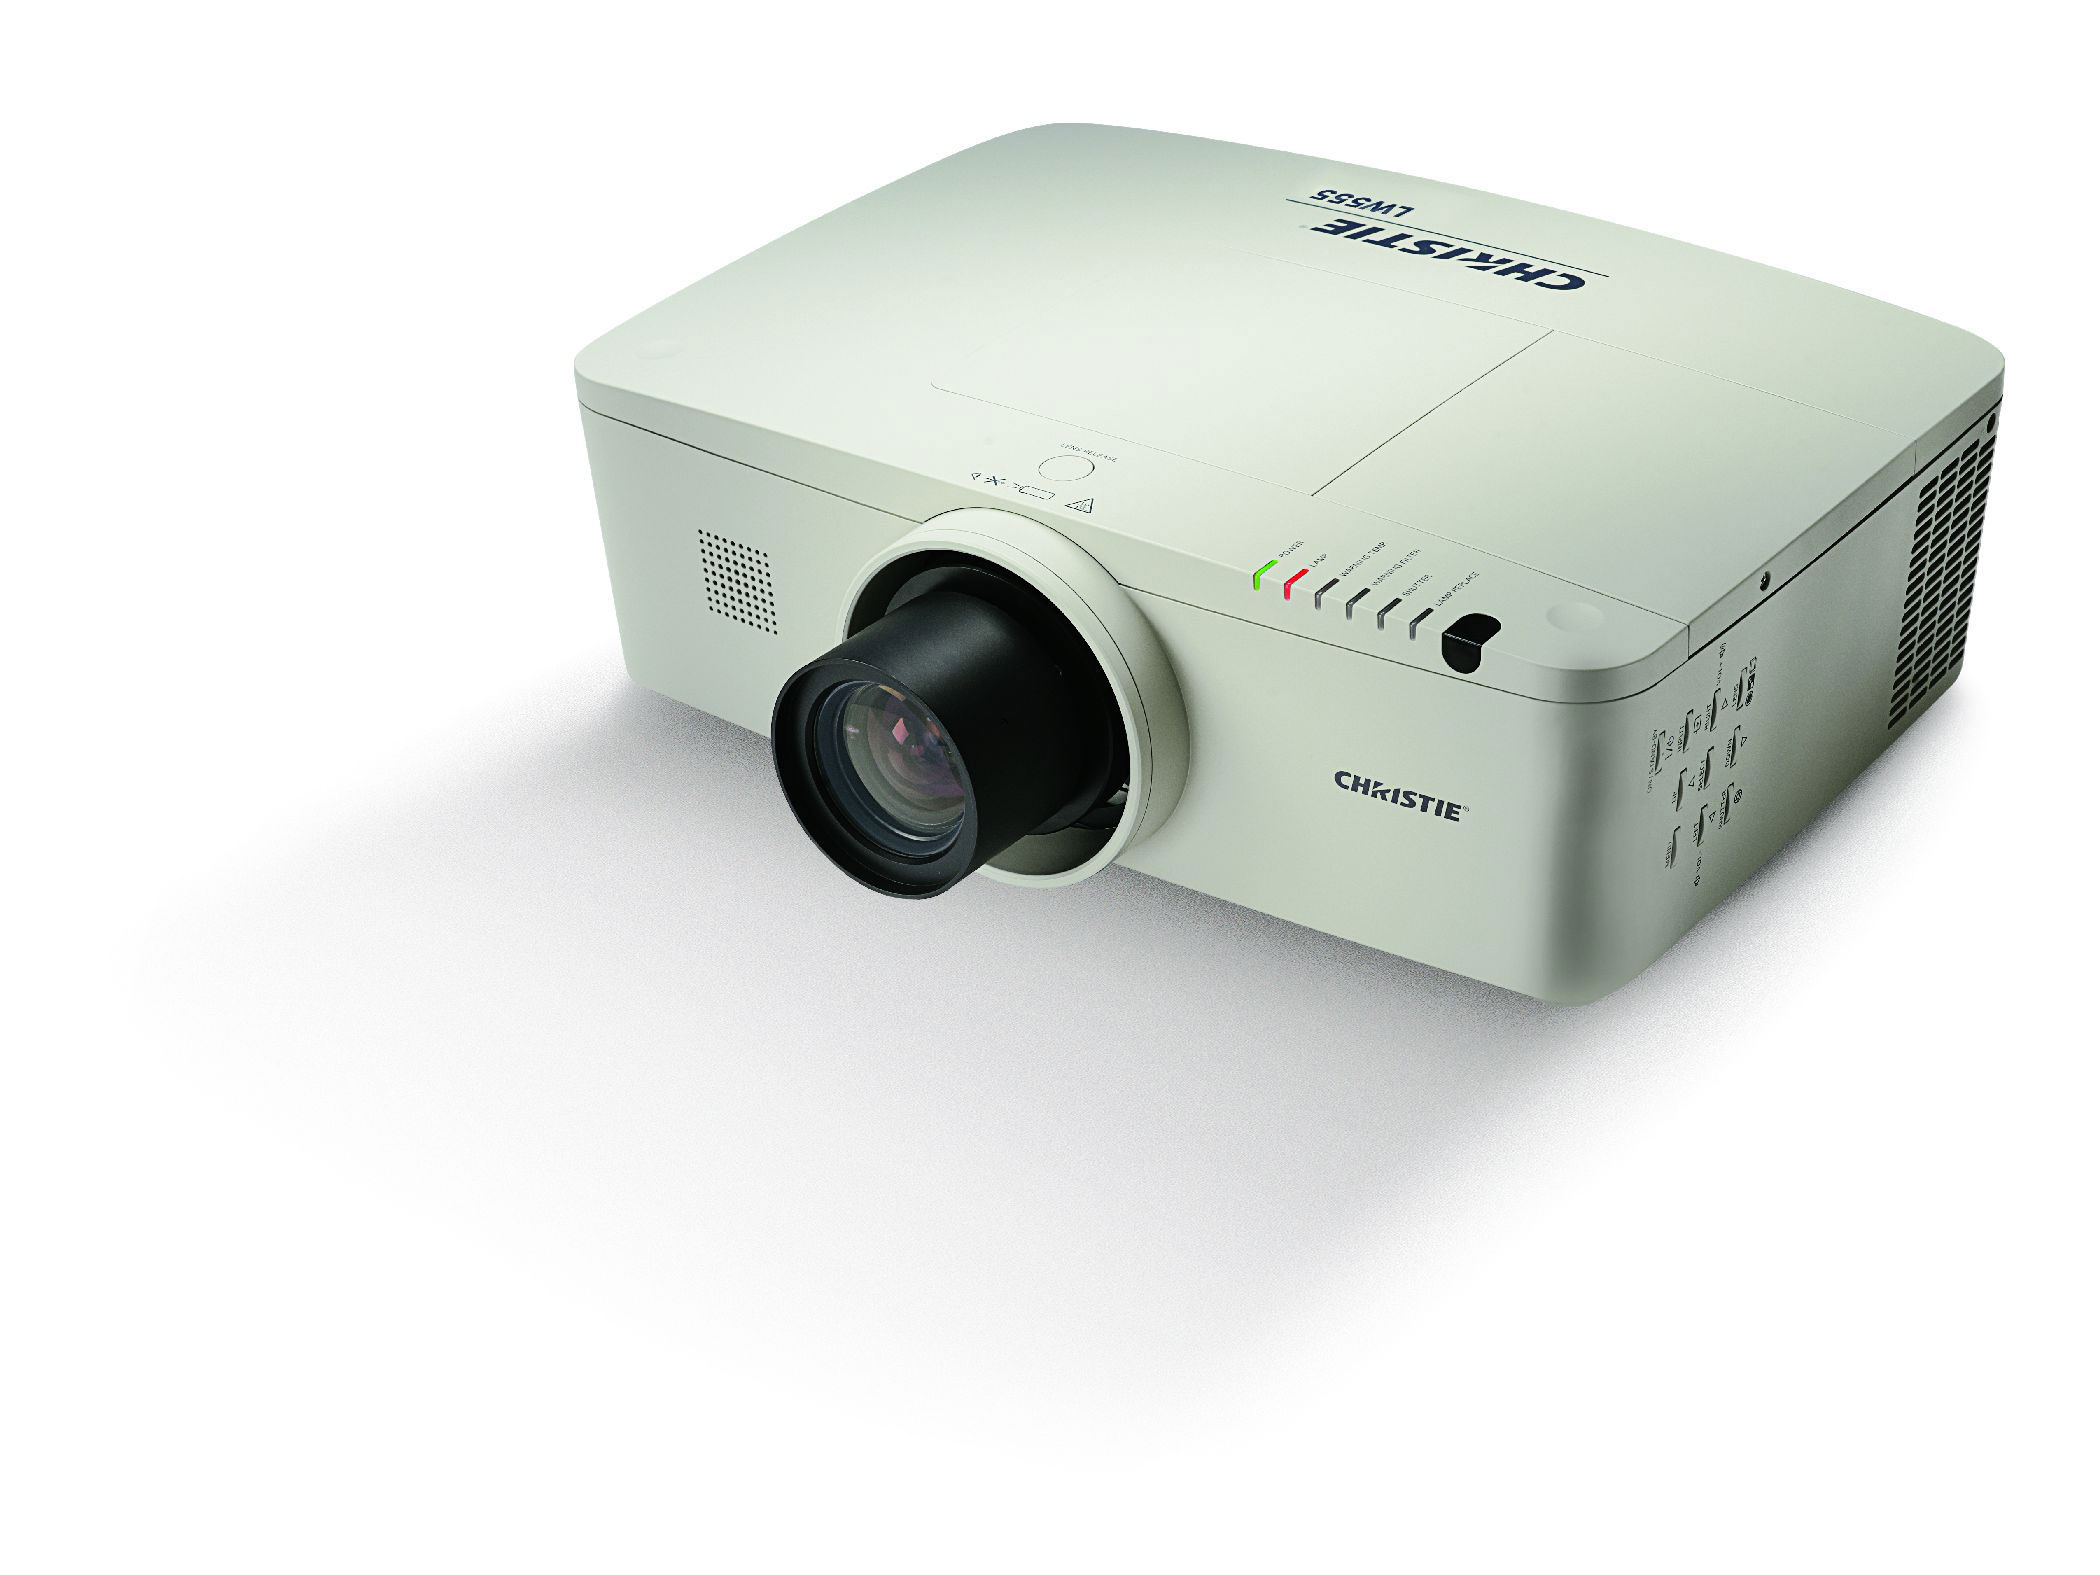 /globalassets/.catalog/products/images/christie-lw555/gallery/christie-lw555-lcd-digital-projector-image4.jpg